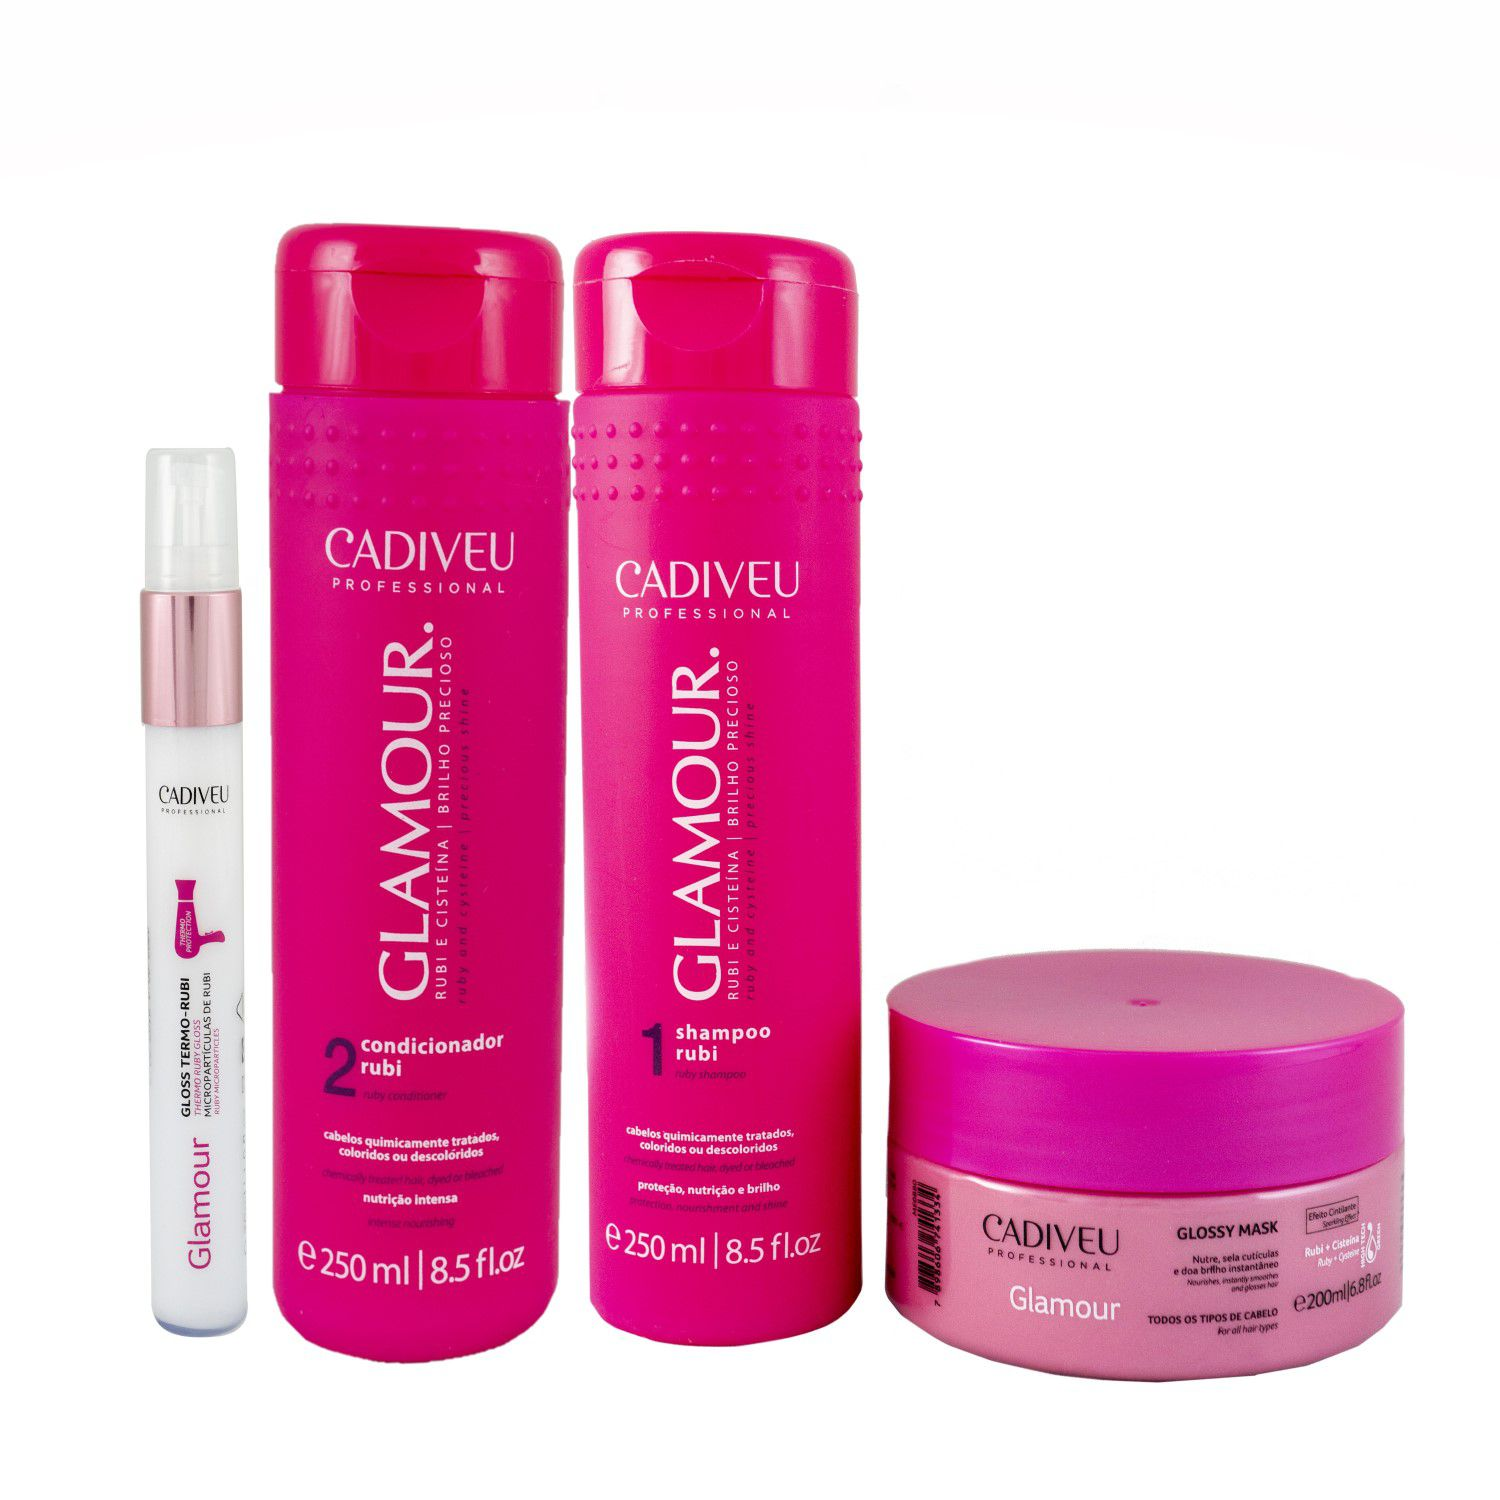 Kit Glamour II Home Care - Cadiveu Professional